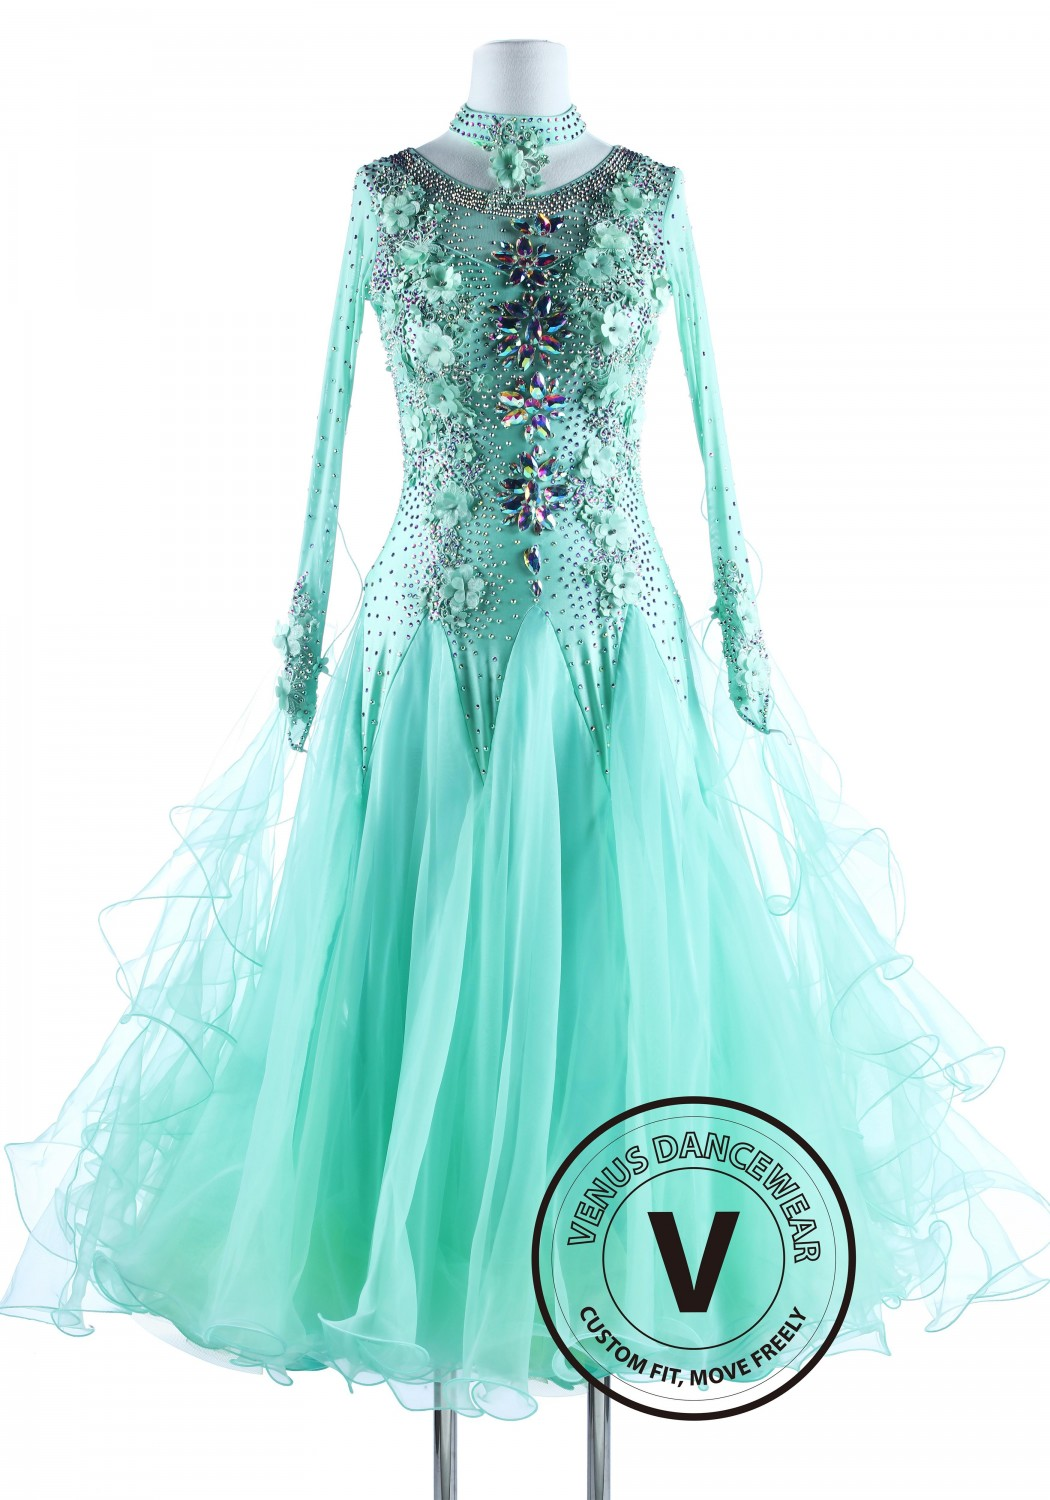 Caribbean Solid Flower International Waltz Ballroom Competition Dance Dress